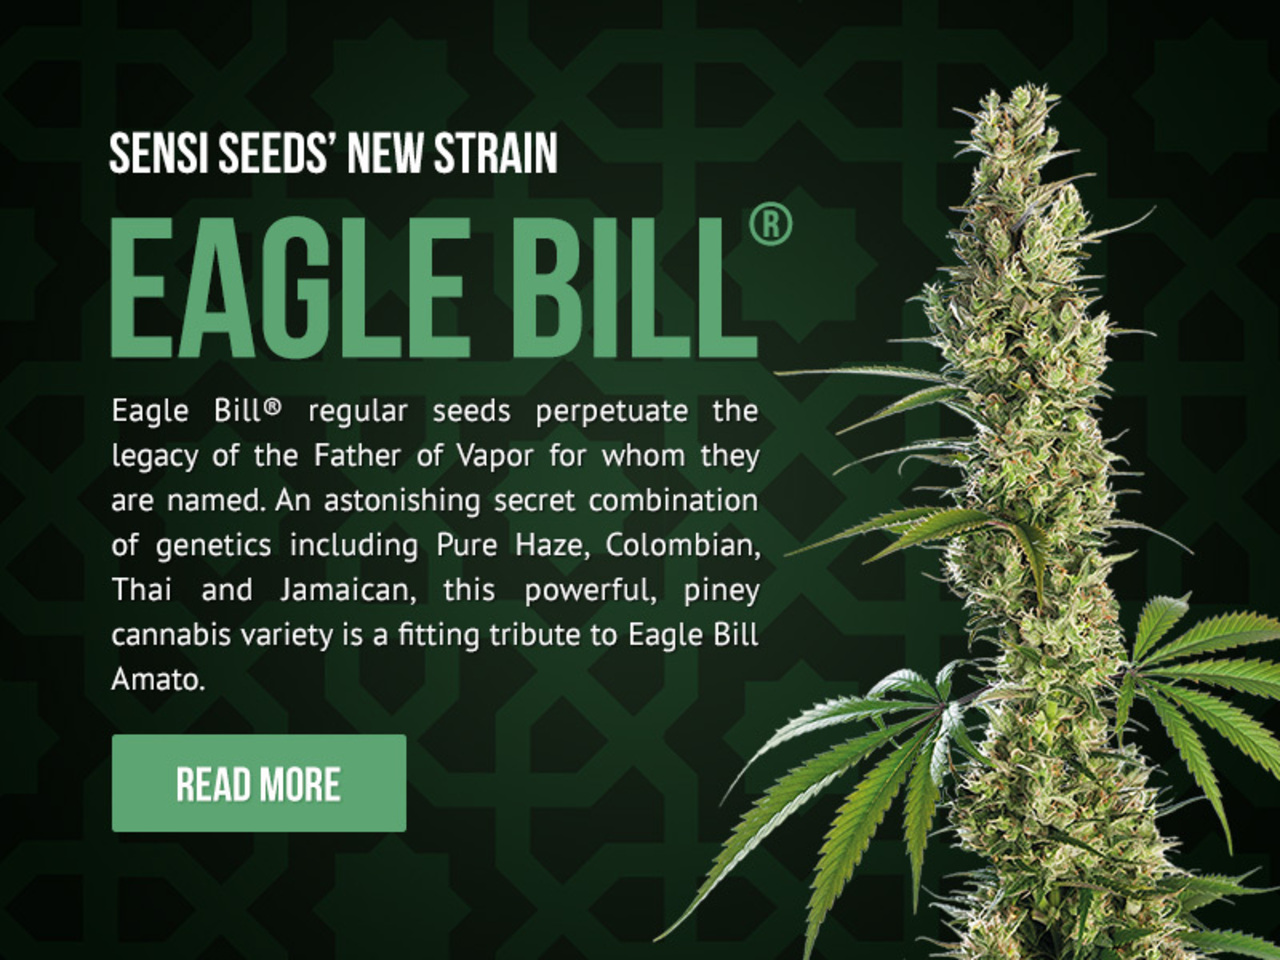 Sensi Seeds's Eagle Bill - Read More